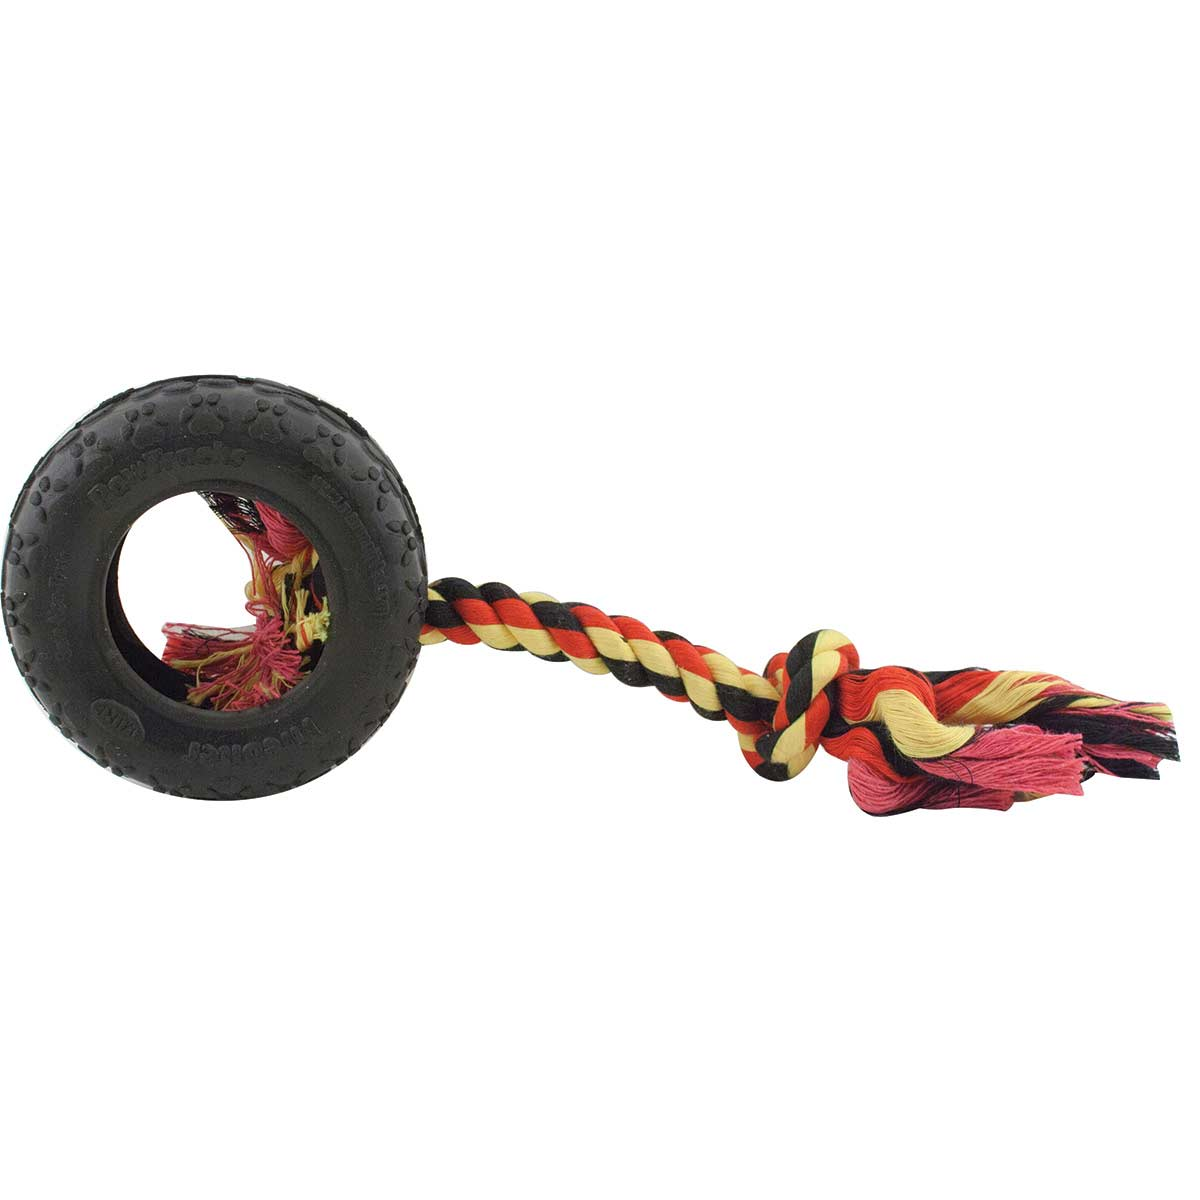 Mammoth TireBiter Medium Tire With Rope Dog Toy - 8 inch